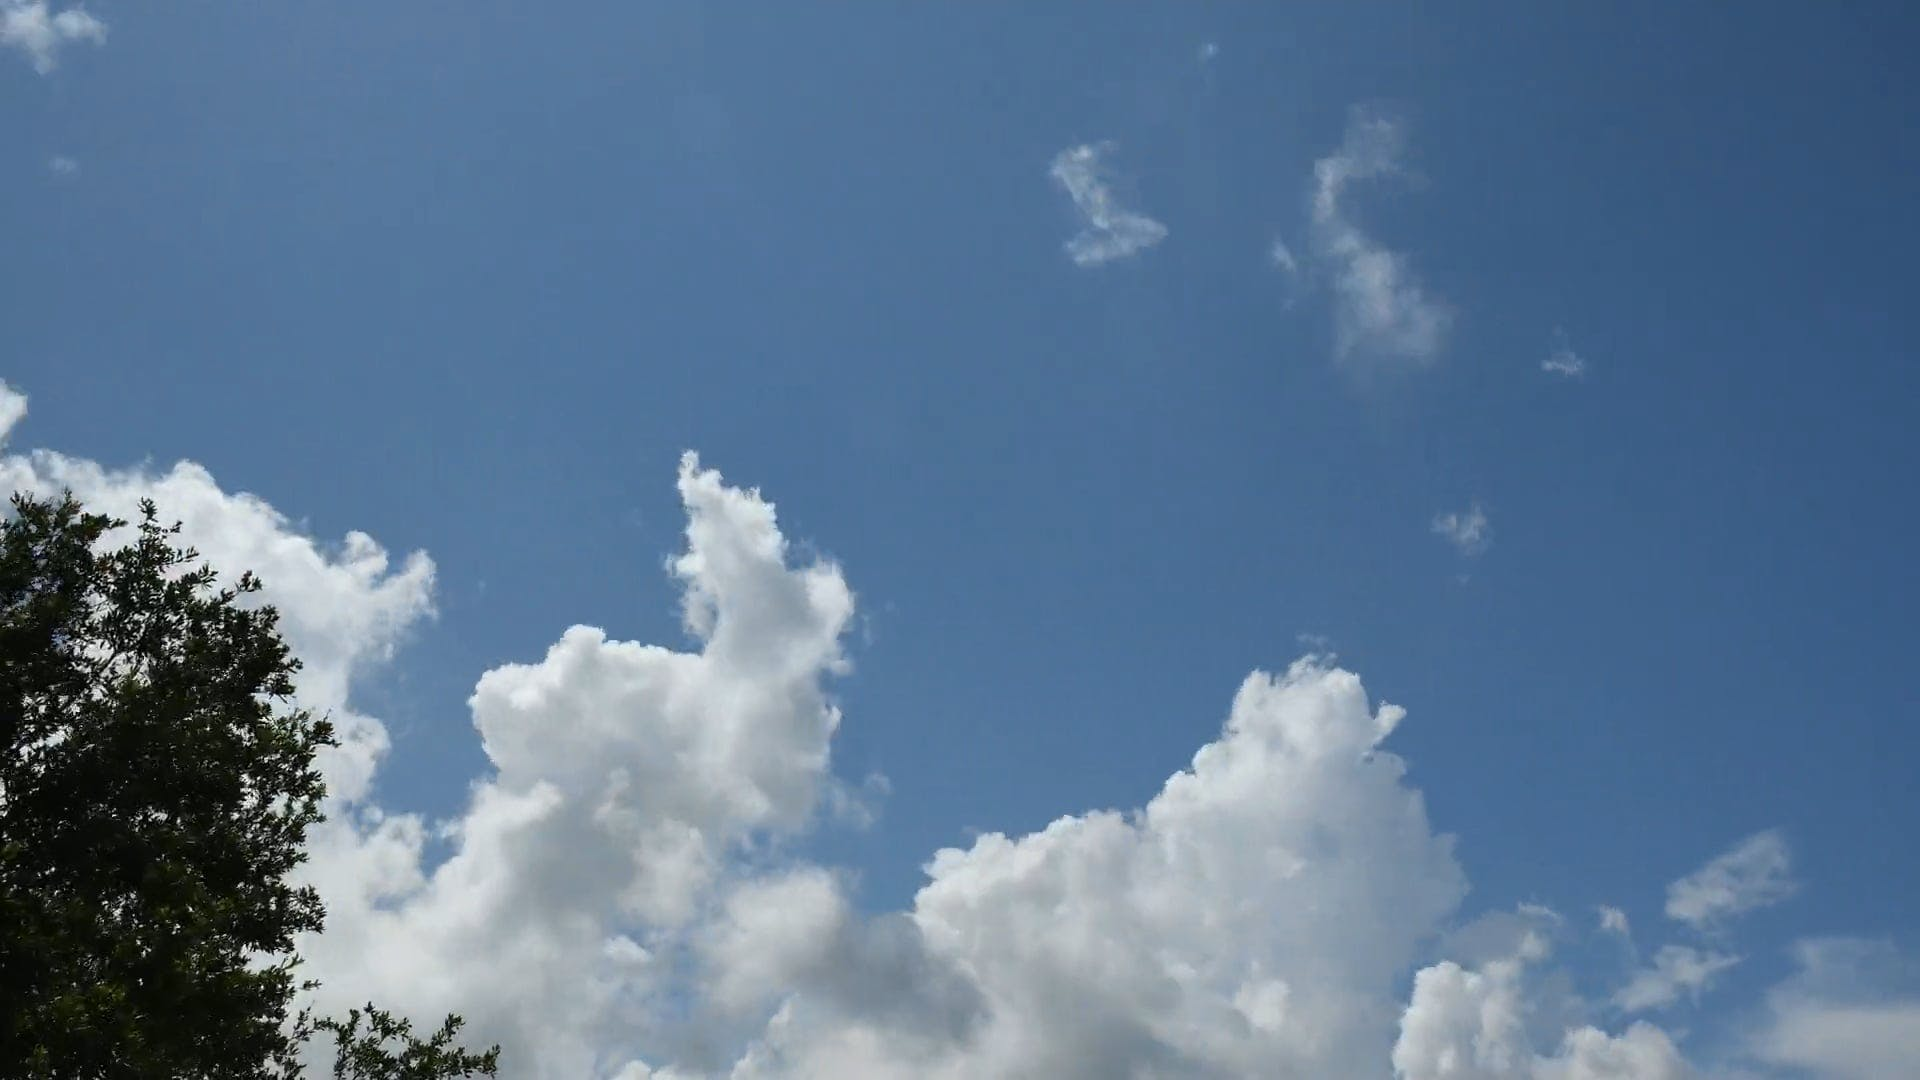 Time Lapse Video Of Clouds